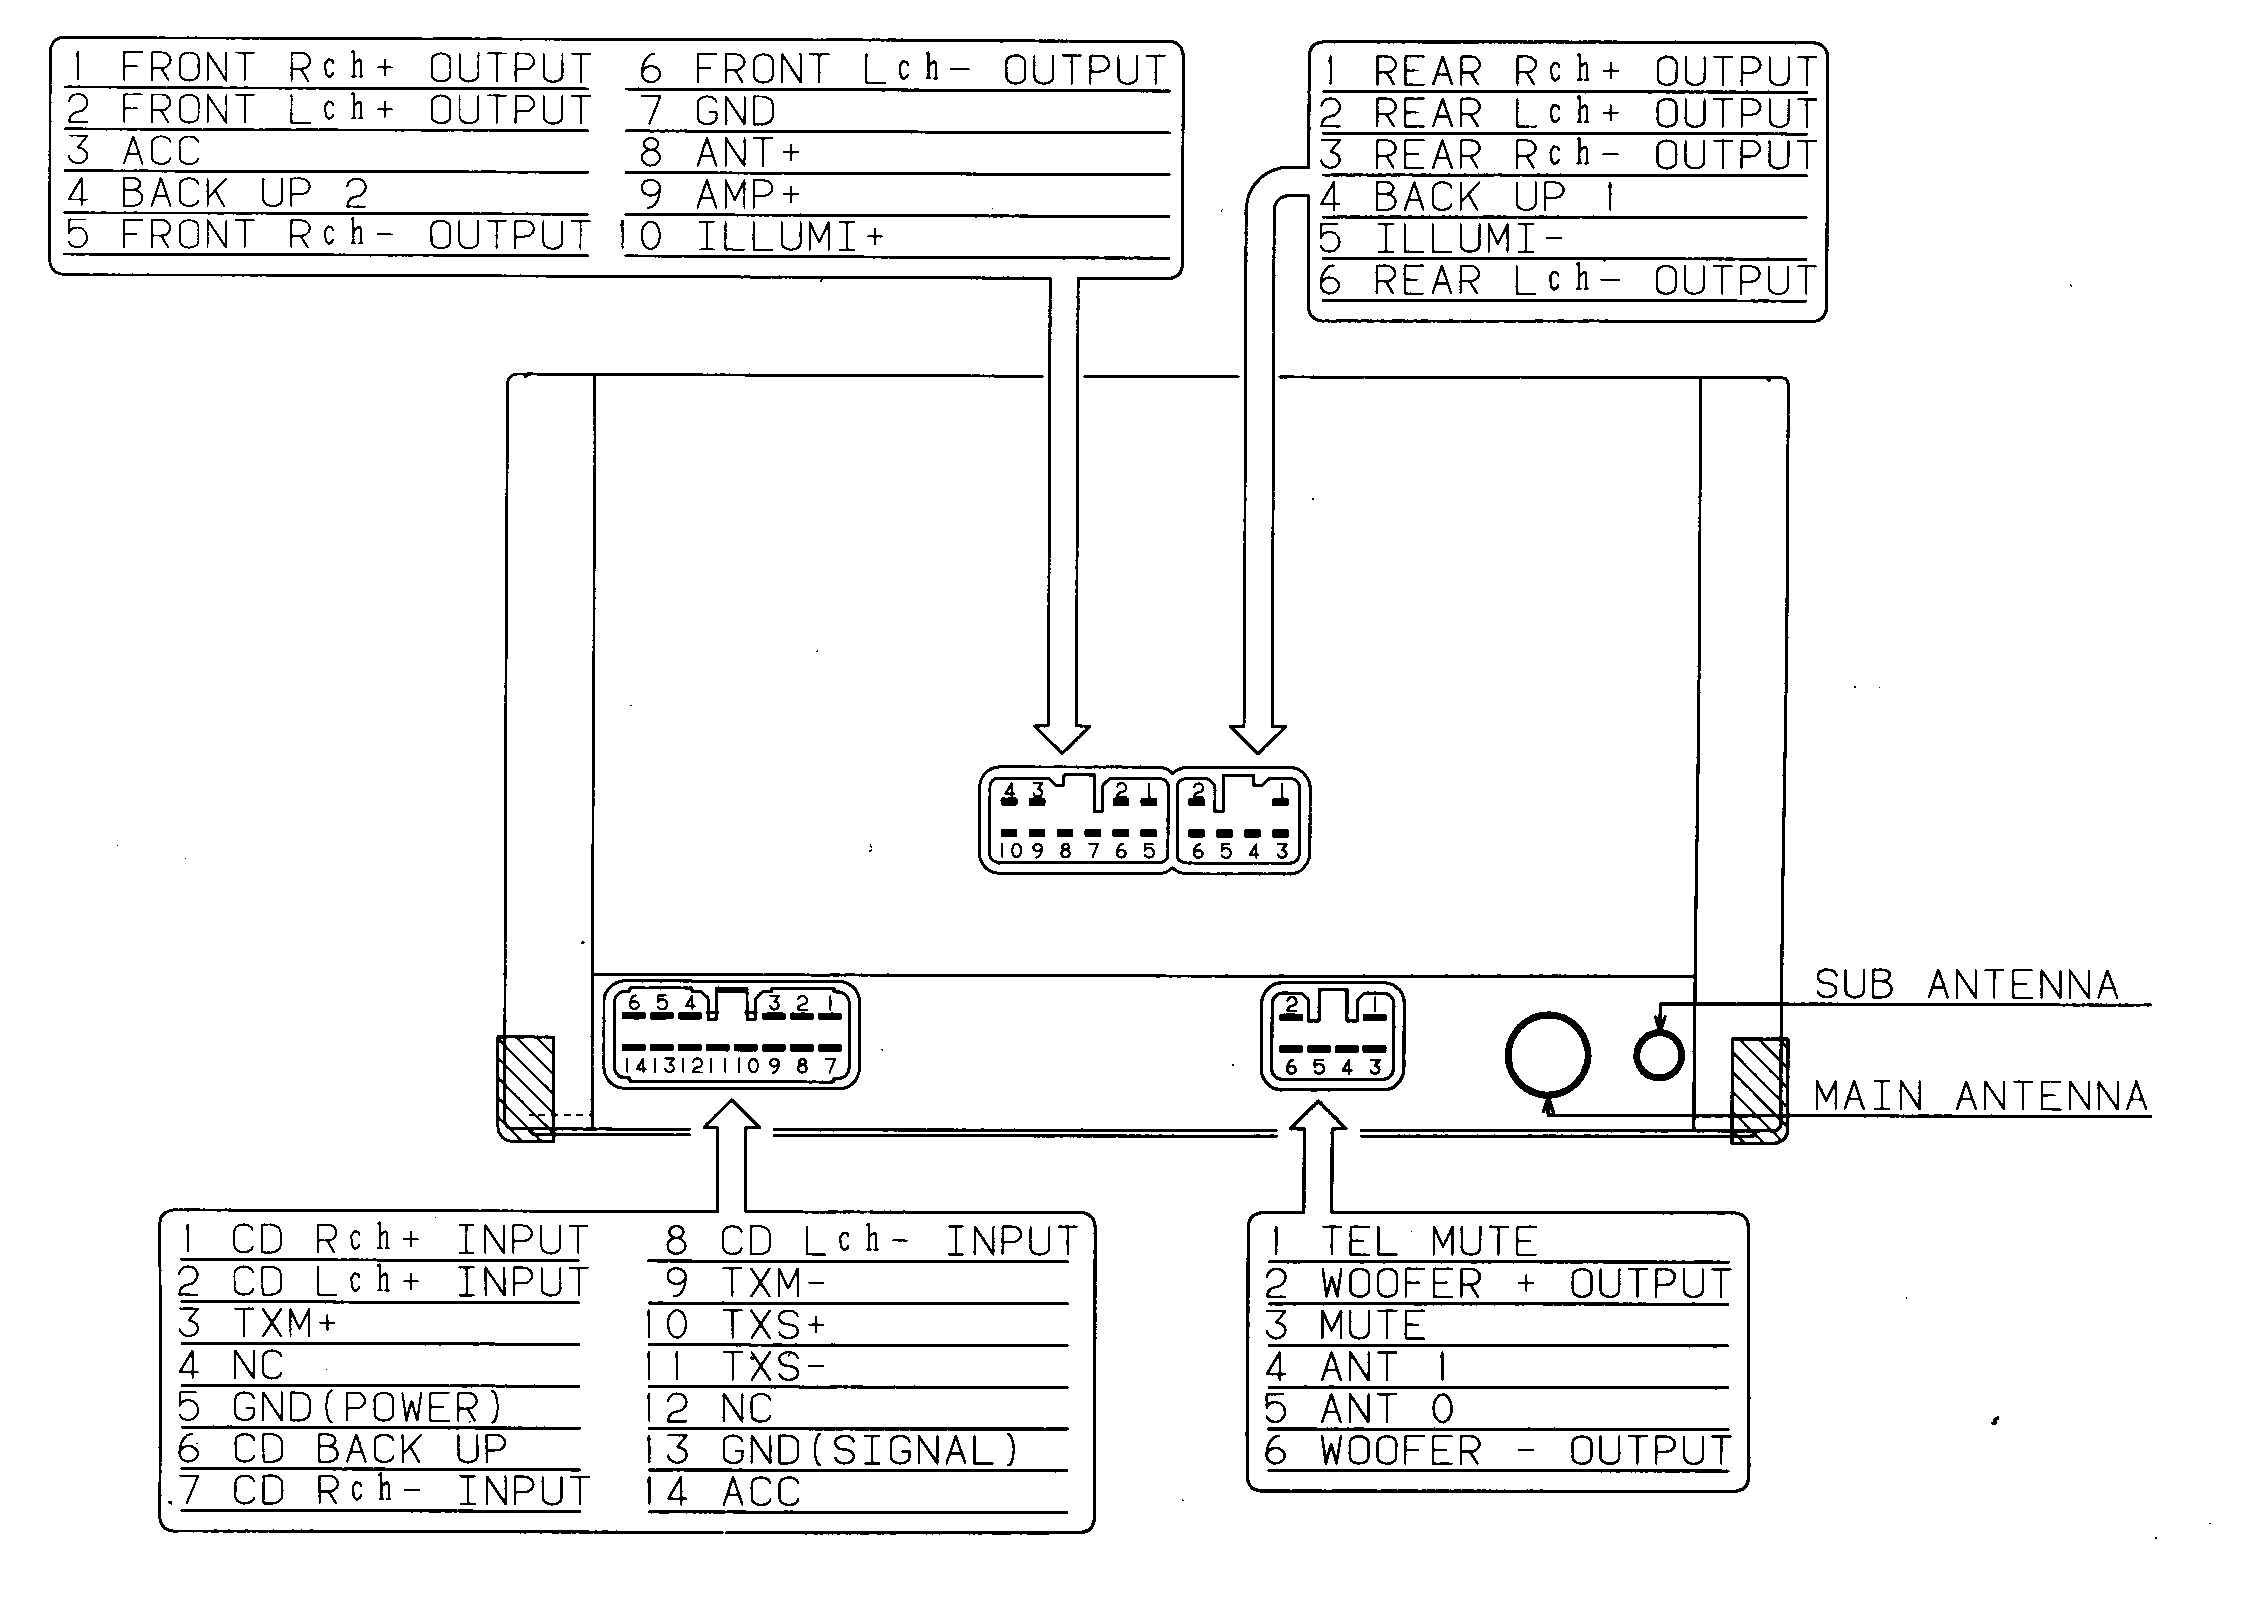 wiring diagram pioneer cd player wiring image lexus car radio stereo audio wiring diagram autoradio connector on wiring diagram pioneer cd player